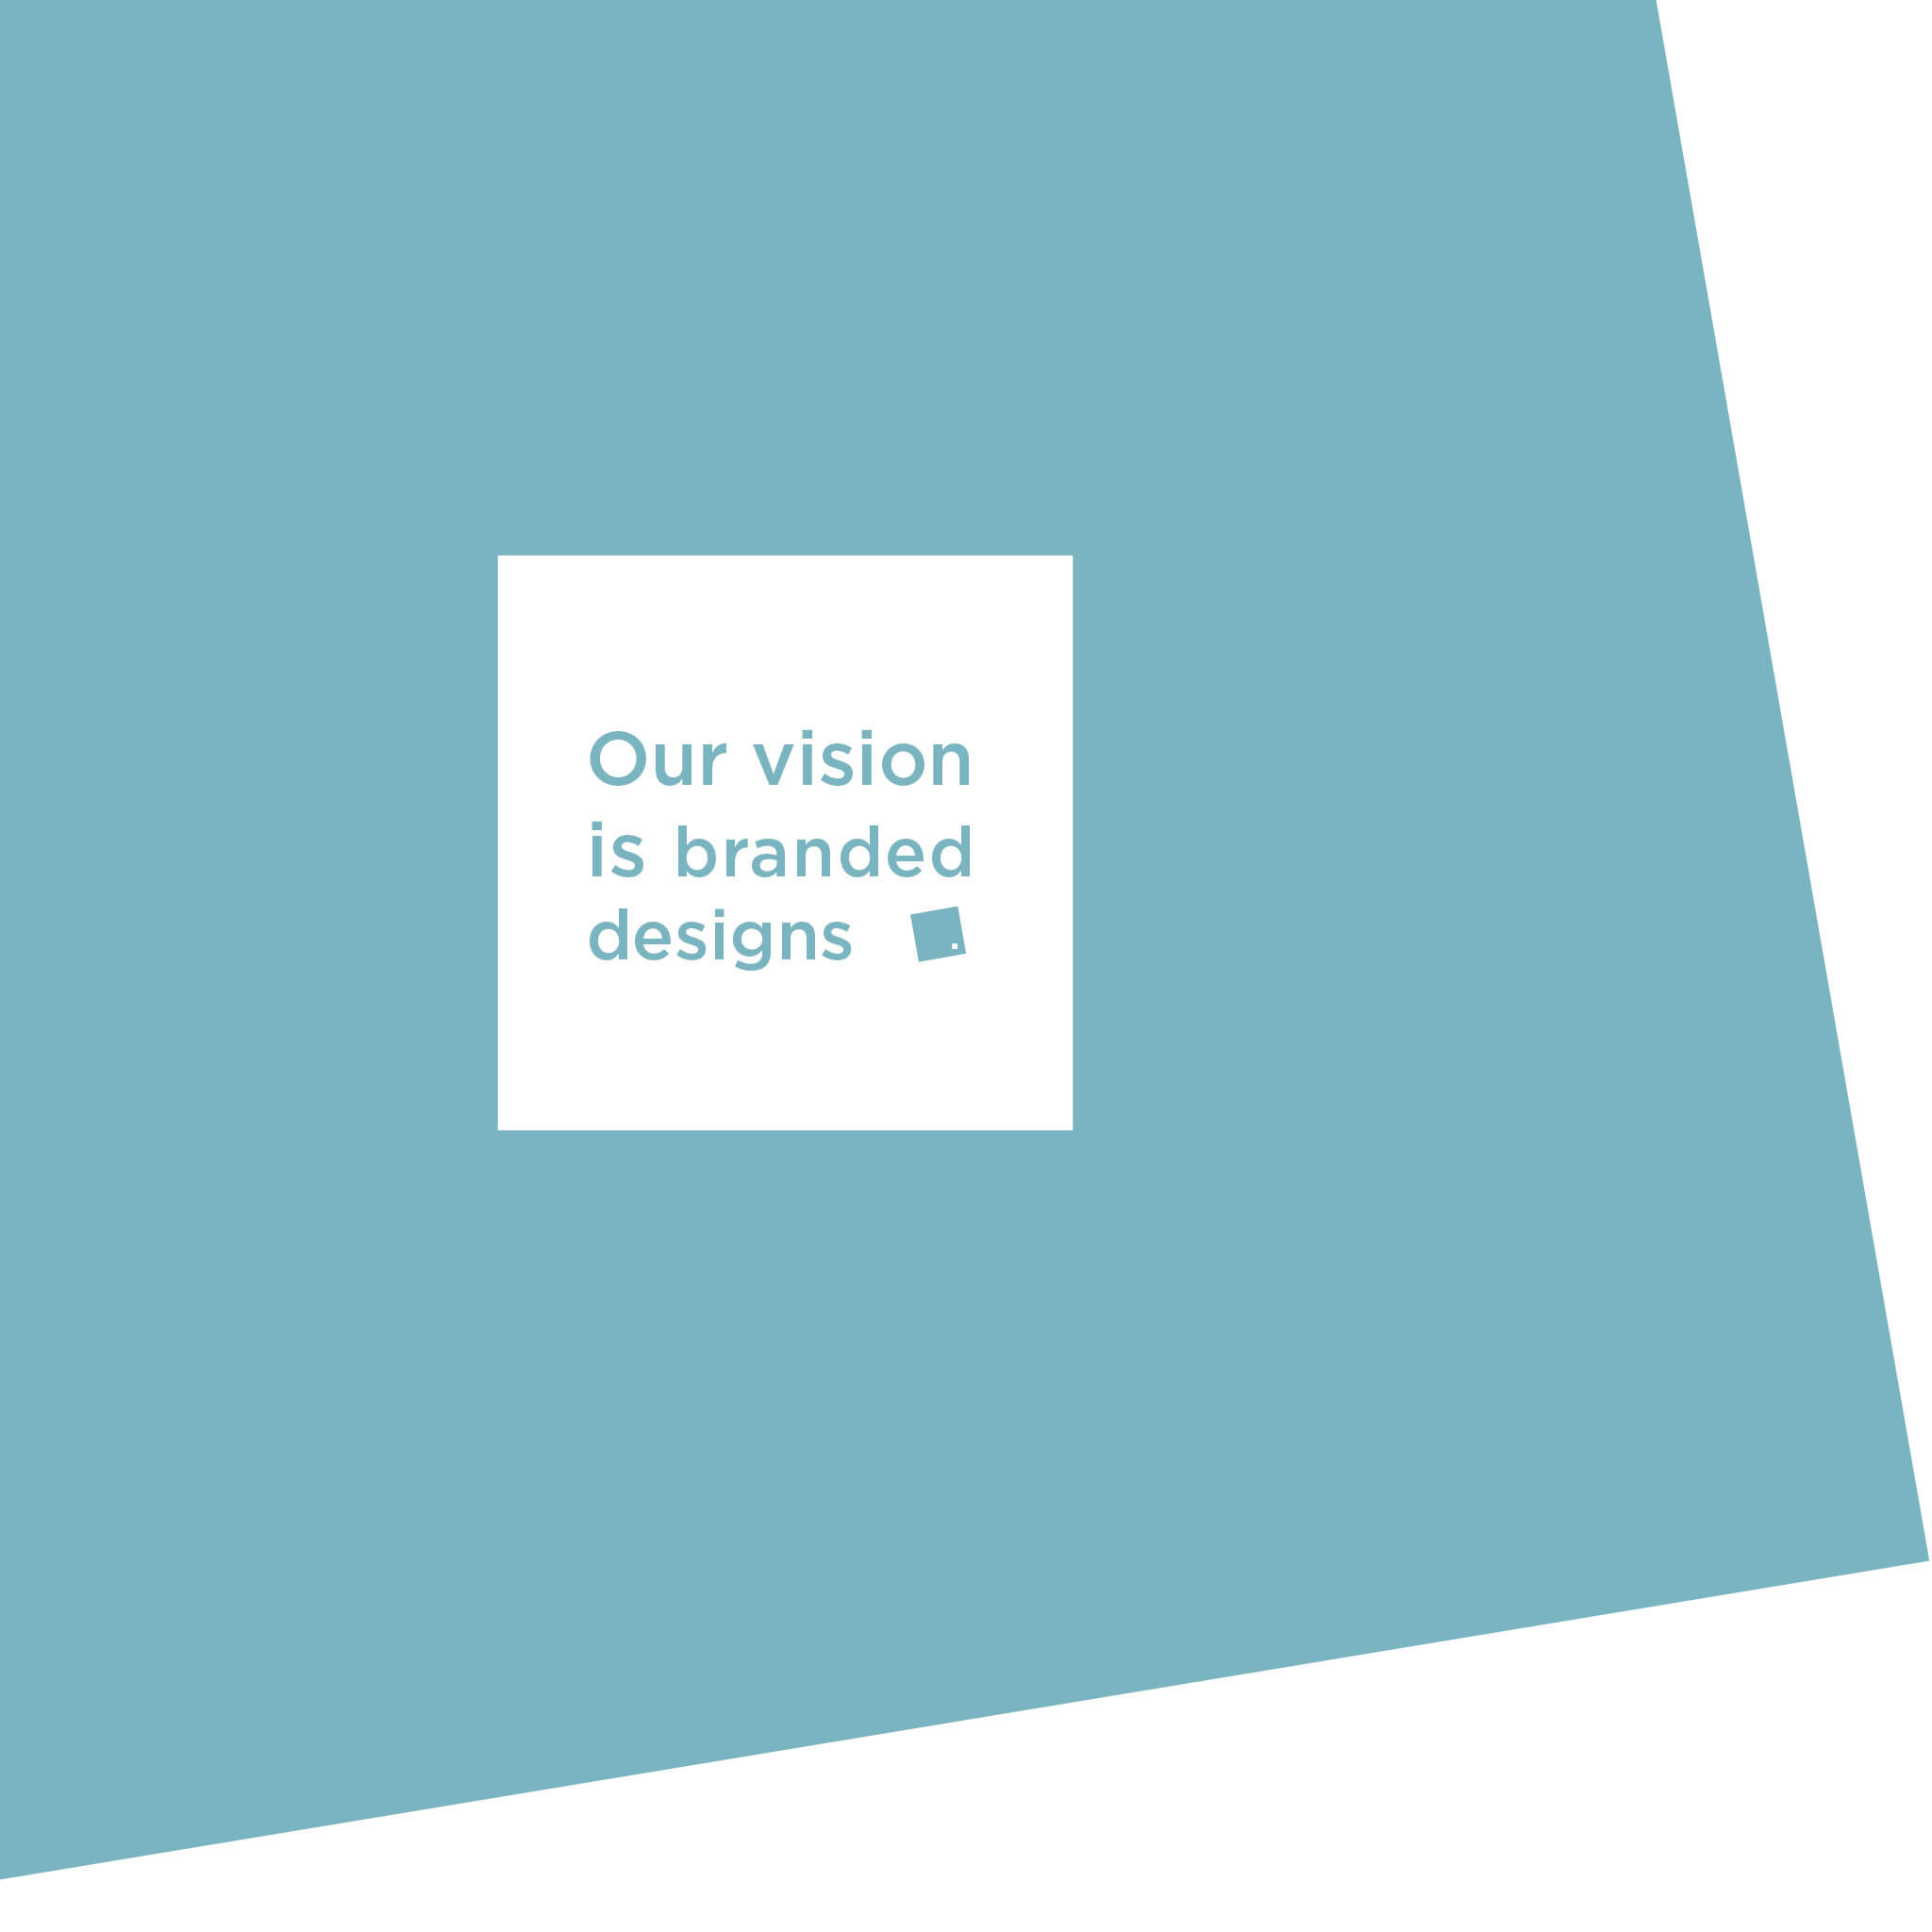 Our vision is branded design